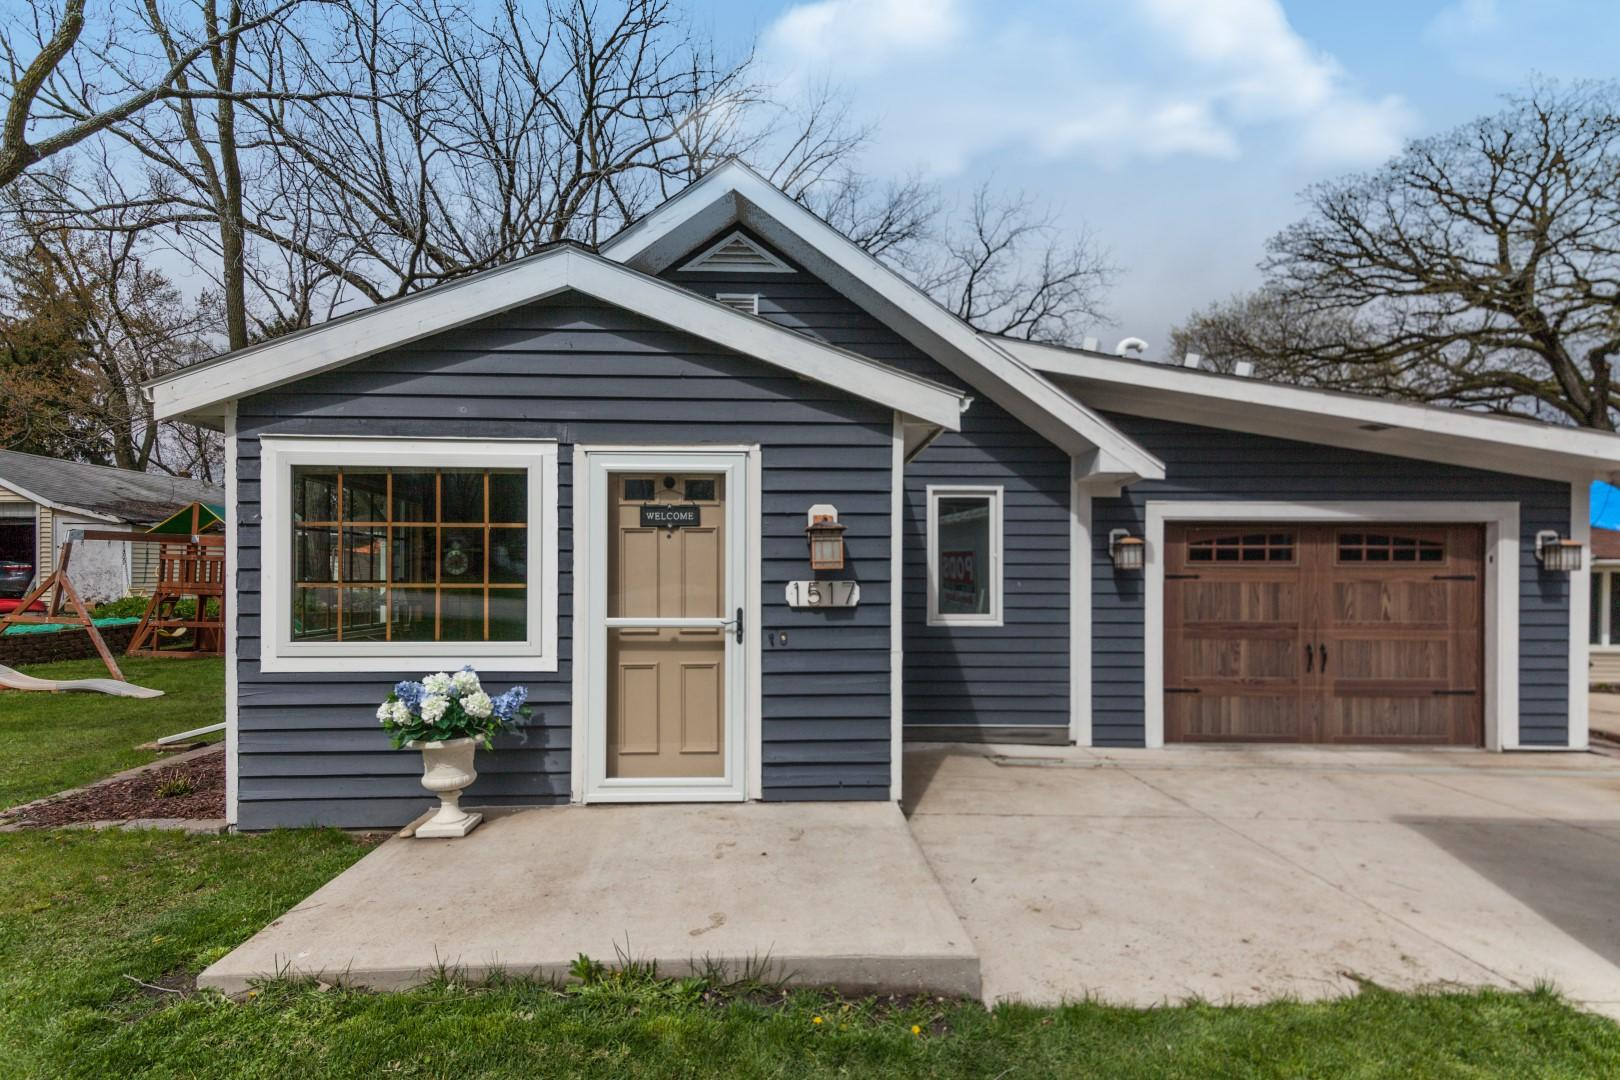 1517 Second St, Delafield, Wisconsin 53018, 3 Bedrooms Bedrooms, ,1 BathroomBathrooms,Single-Family,For Sale,Second St,1634672